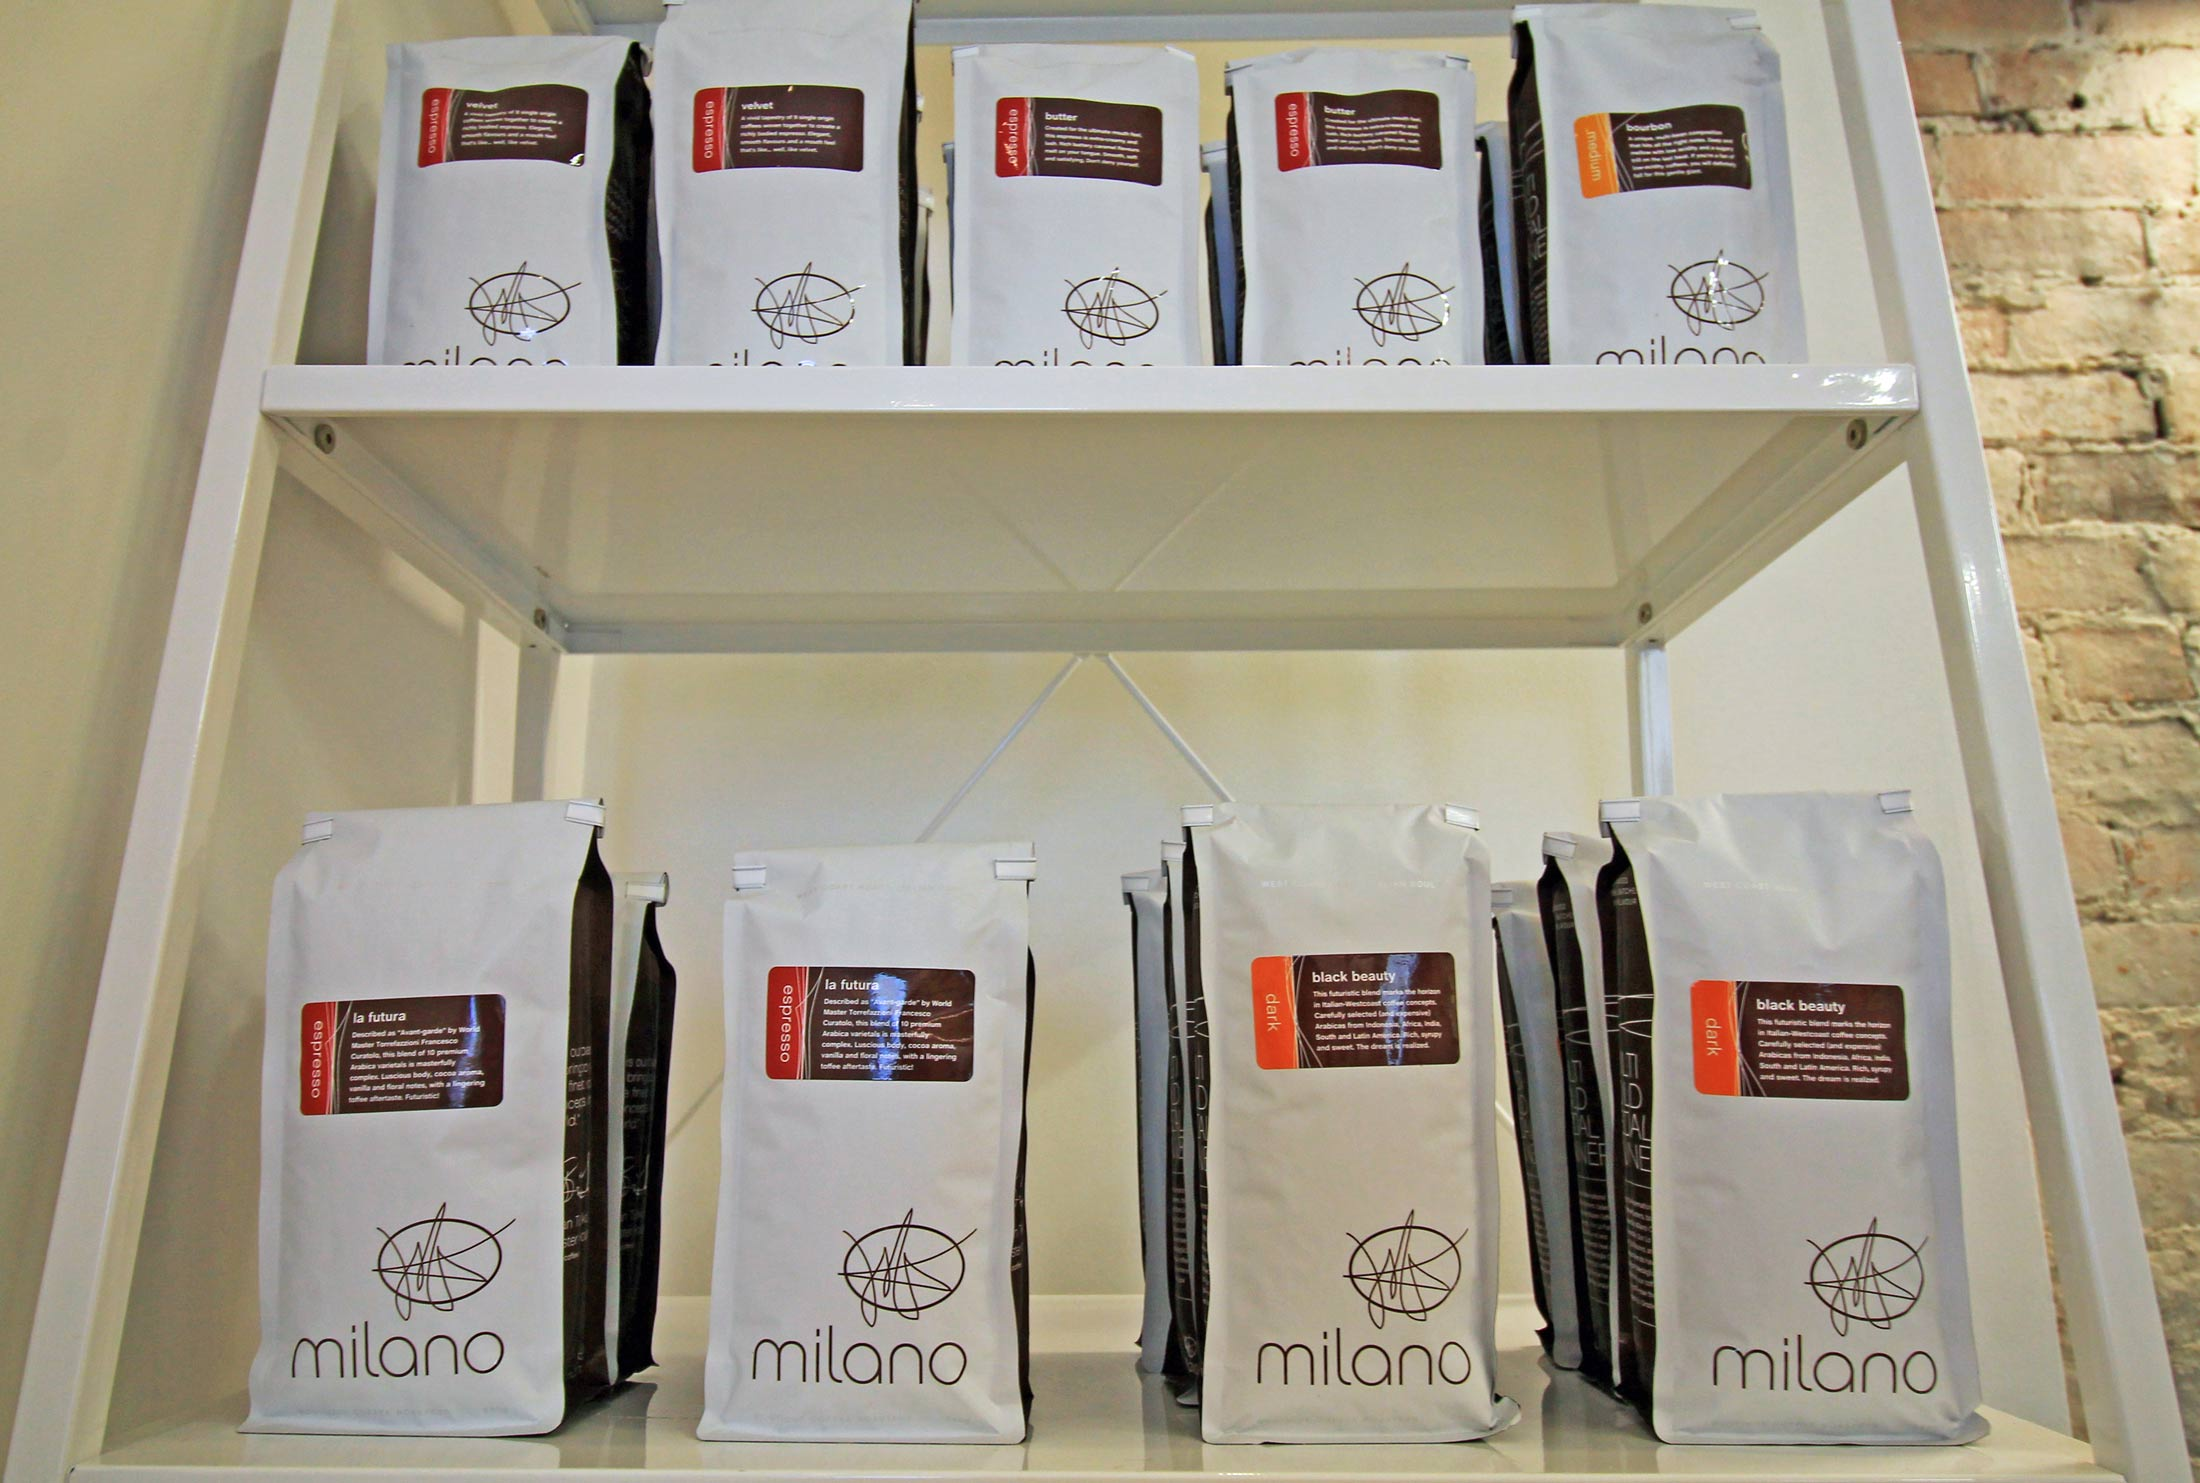 Milano Espresso Bar - Focal Journey (by Gustavo Espinola)